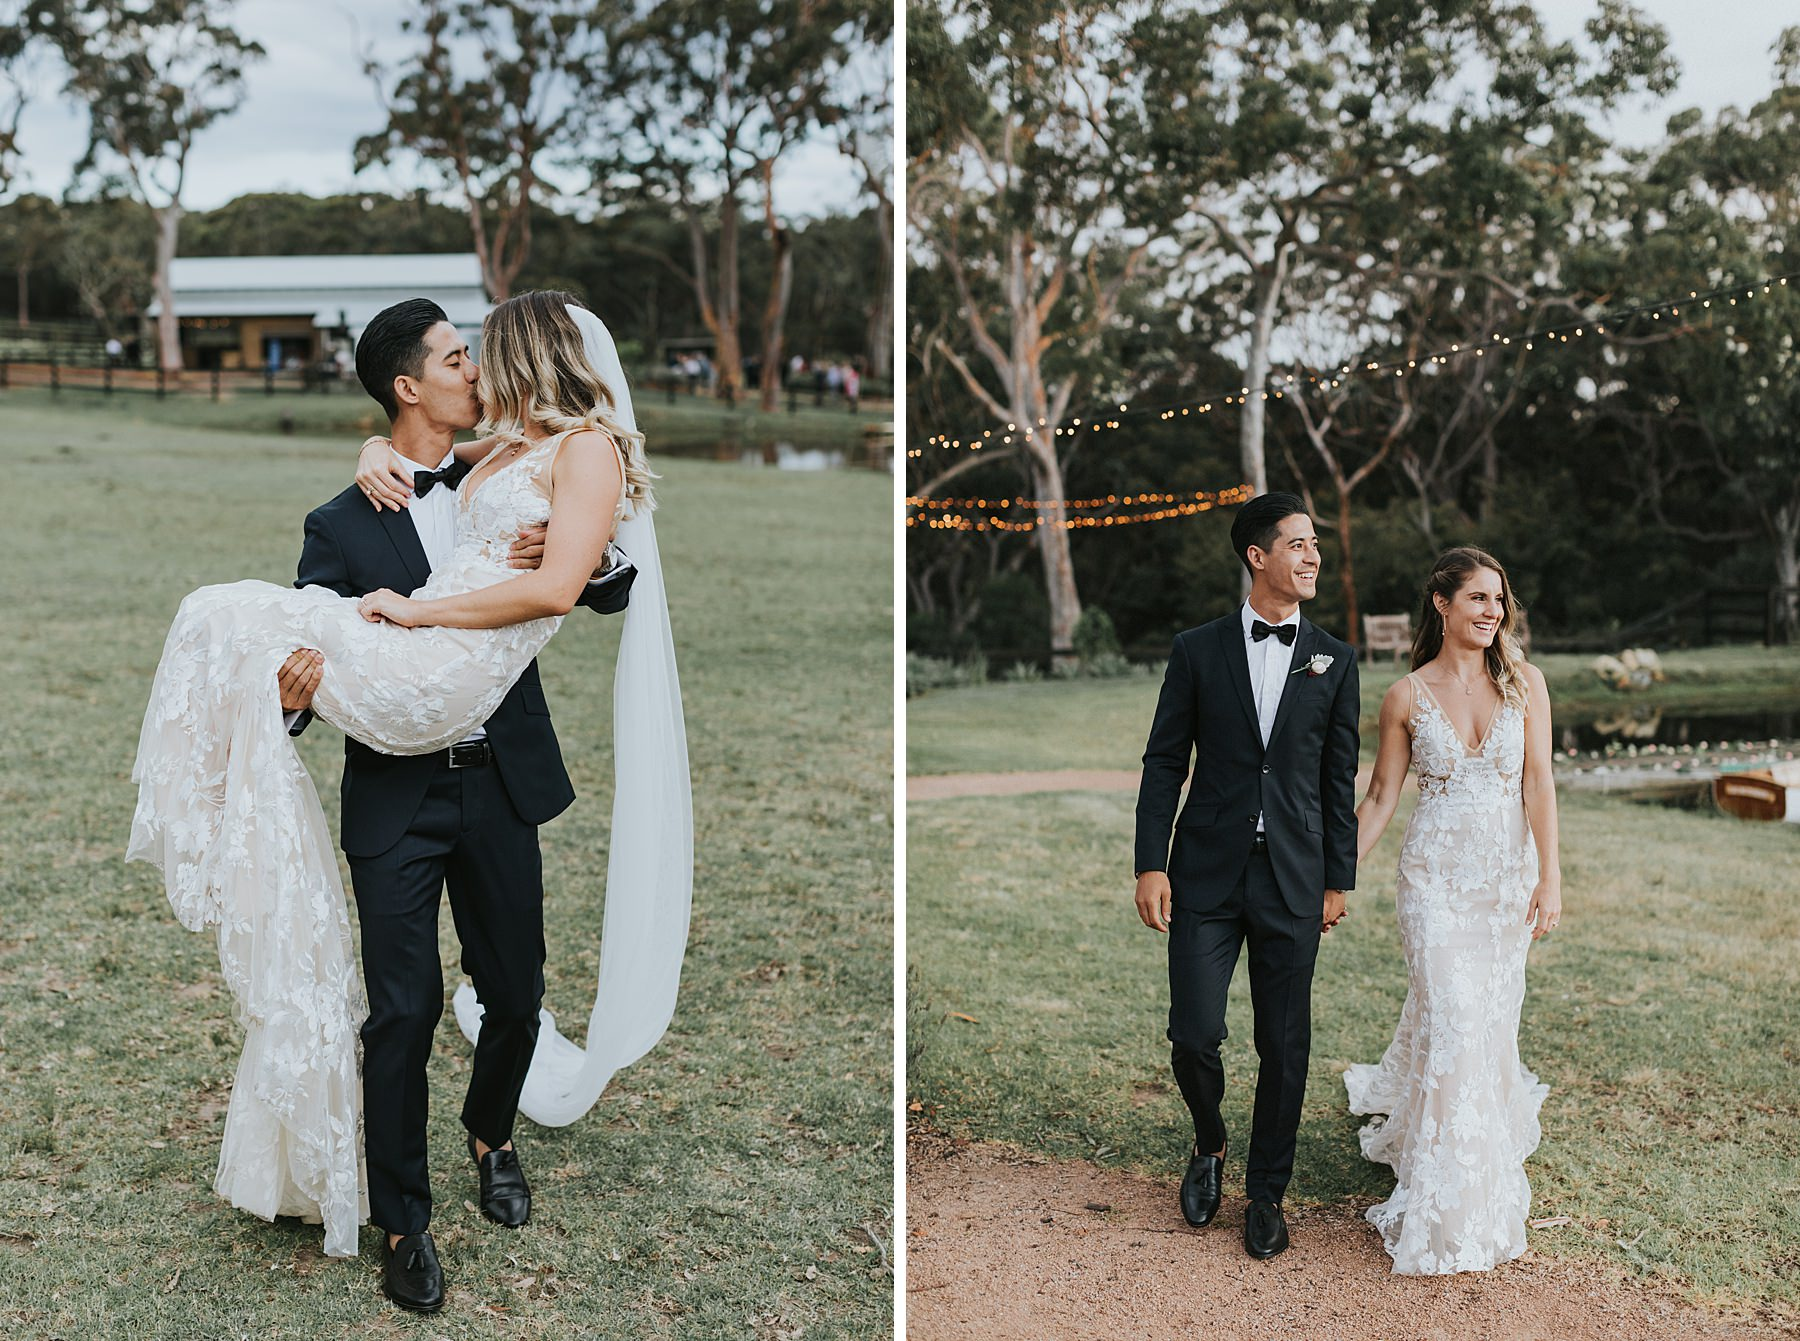 silvergum stables wedding photographs by the lake during golden hour